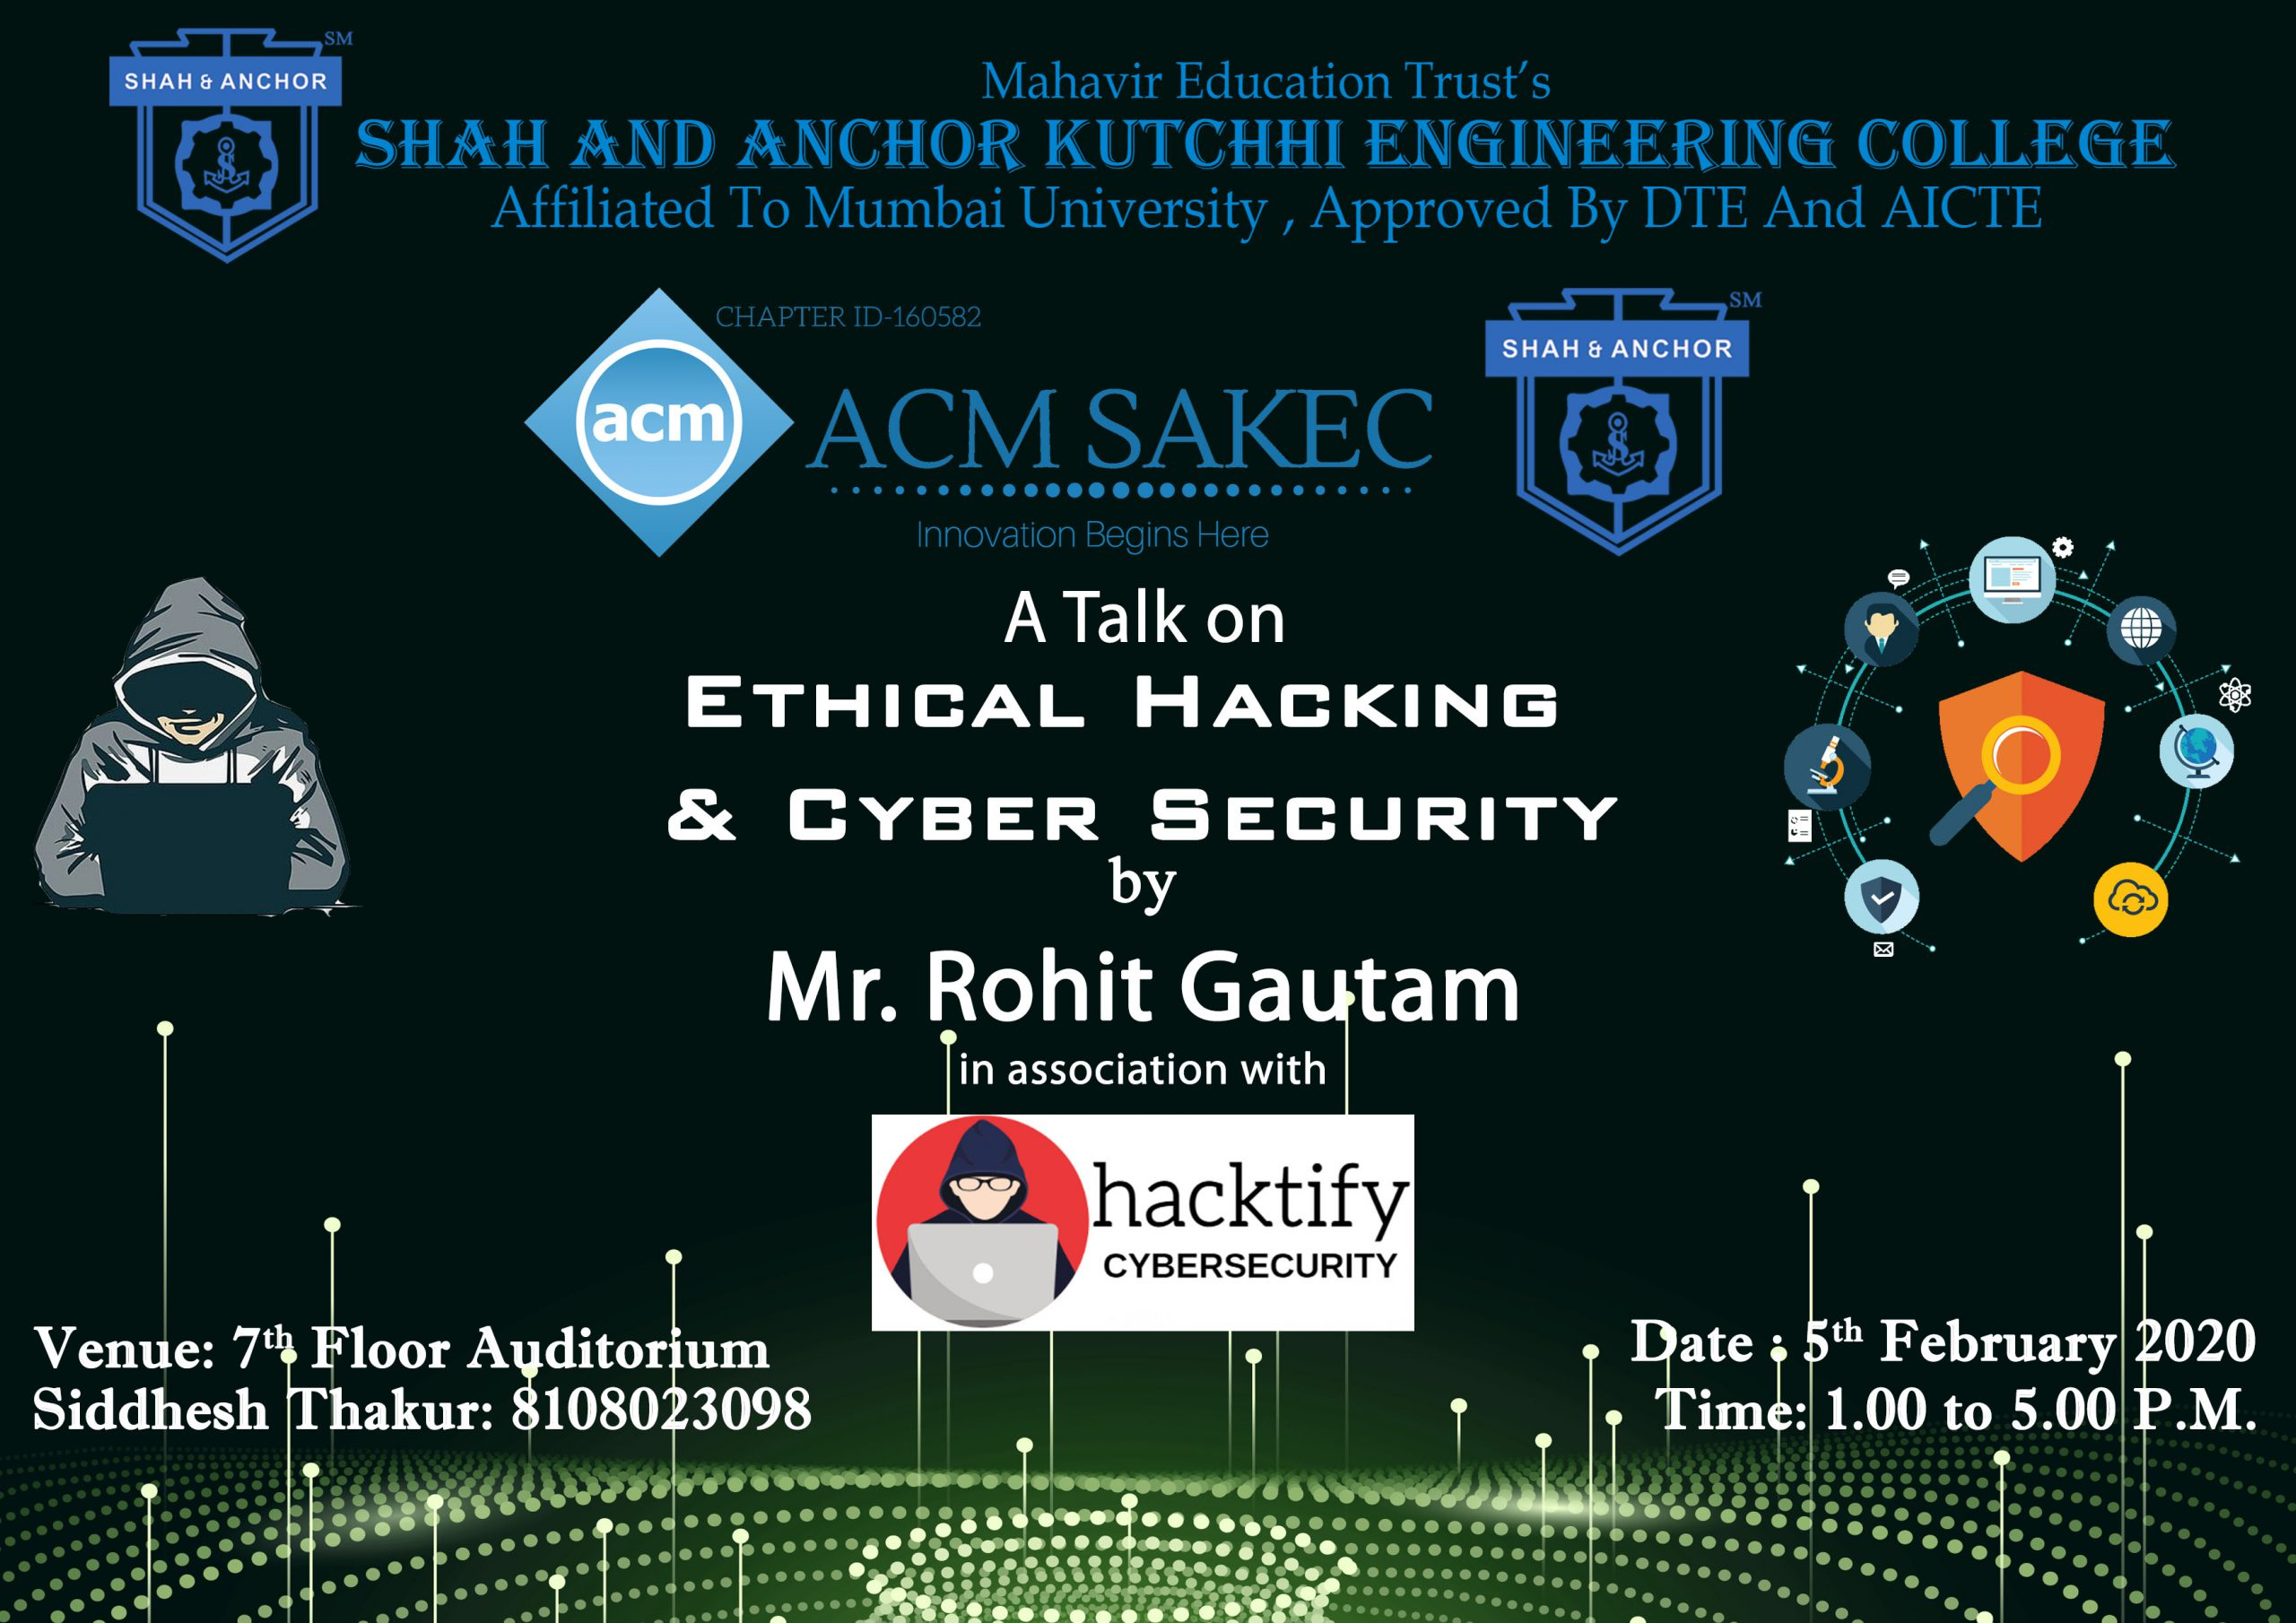 TALK on Ethical Hacking & Cyber Security